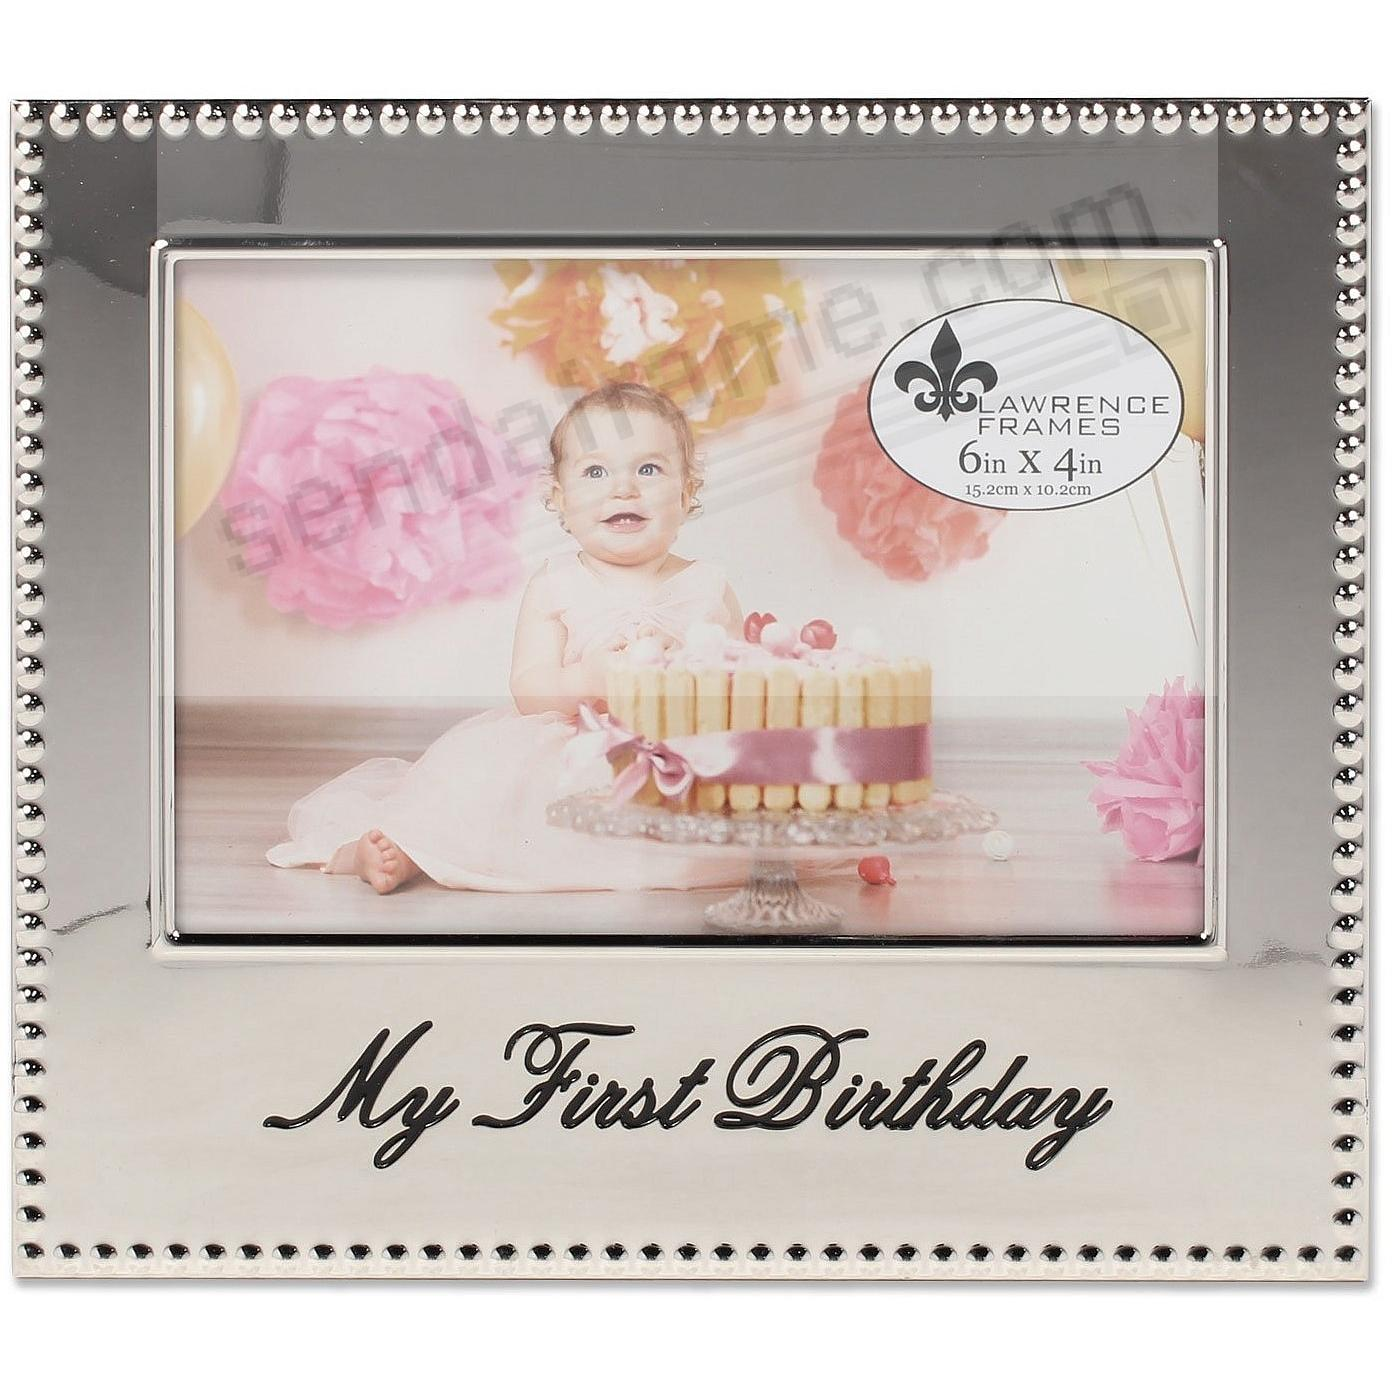 MY FIRST BIRTHDAY celebration frame by Lawrence®